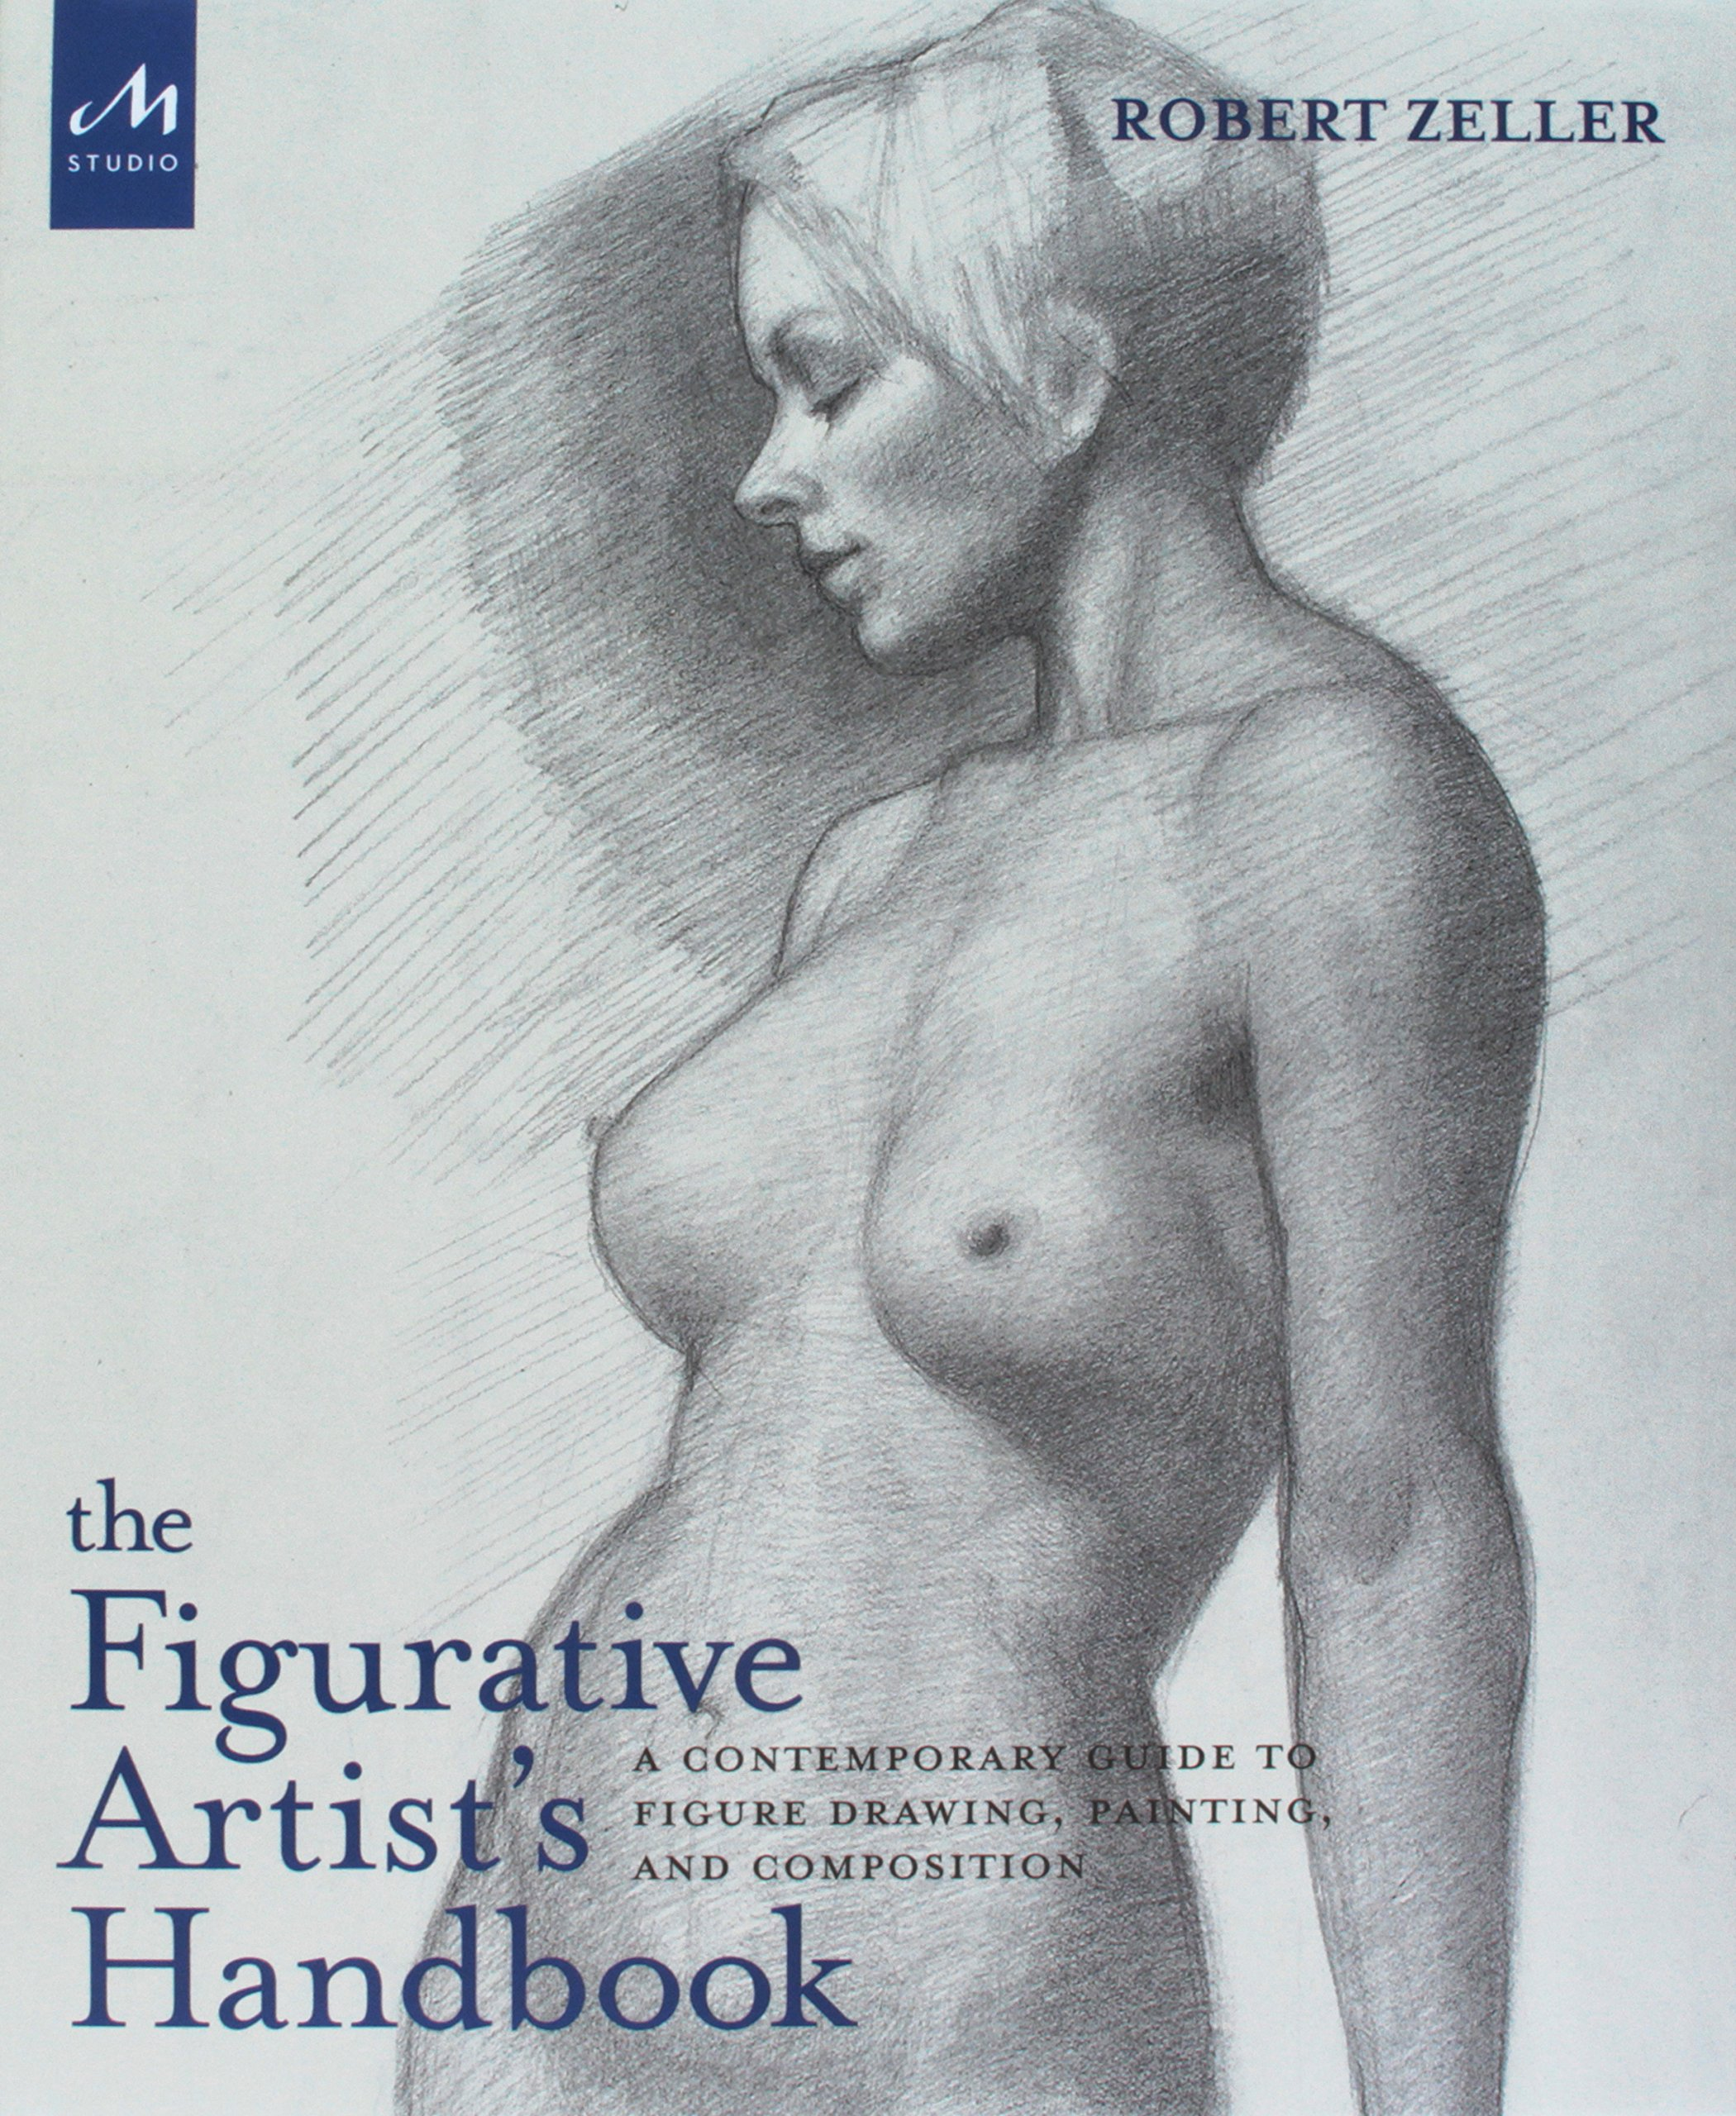 - Required book for class, The Figurative Artist's Handbook by the instructor, Robert Zeller. The book is available for purchase at the school for $30, or on Amazon here